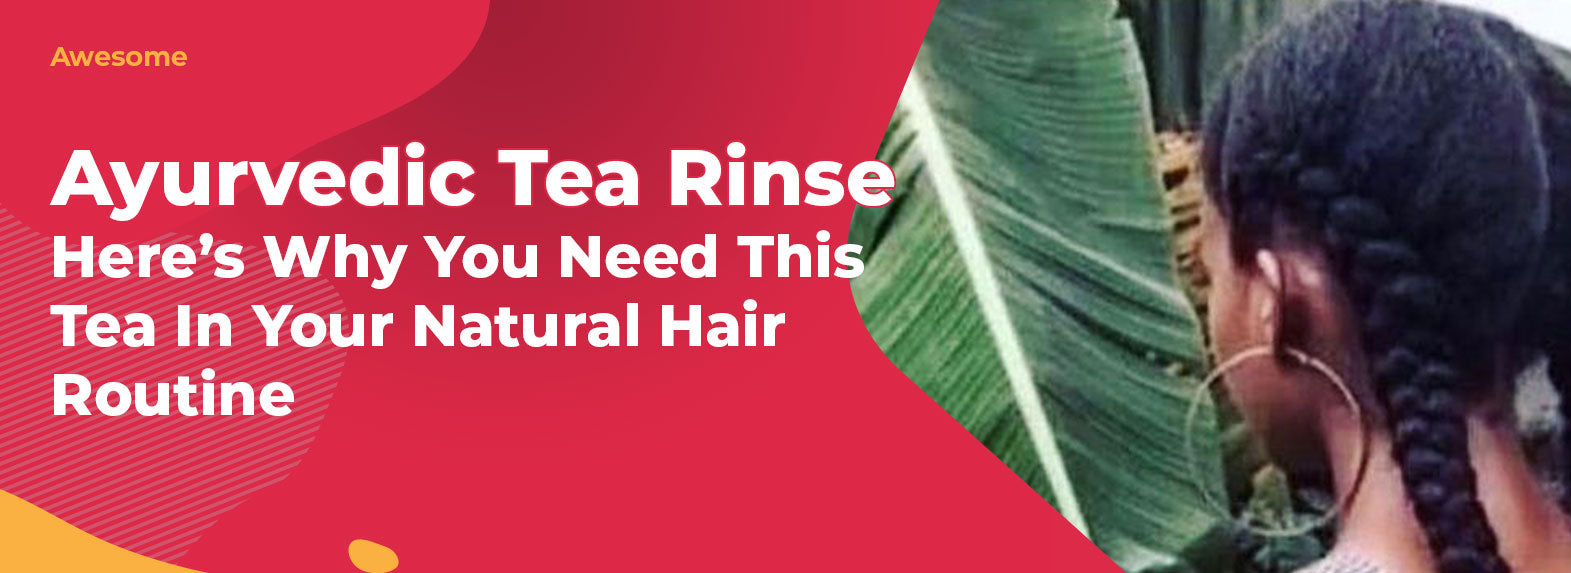 Ayurvedic Tea Rinse - Here's Why You Need This Tea In Your Natural Hair Routine!